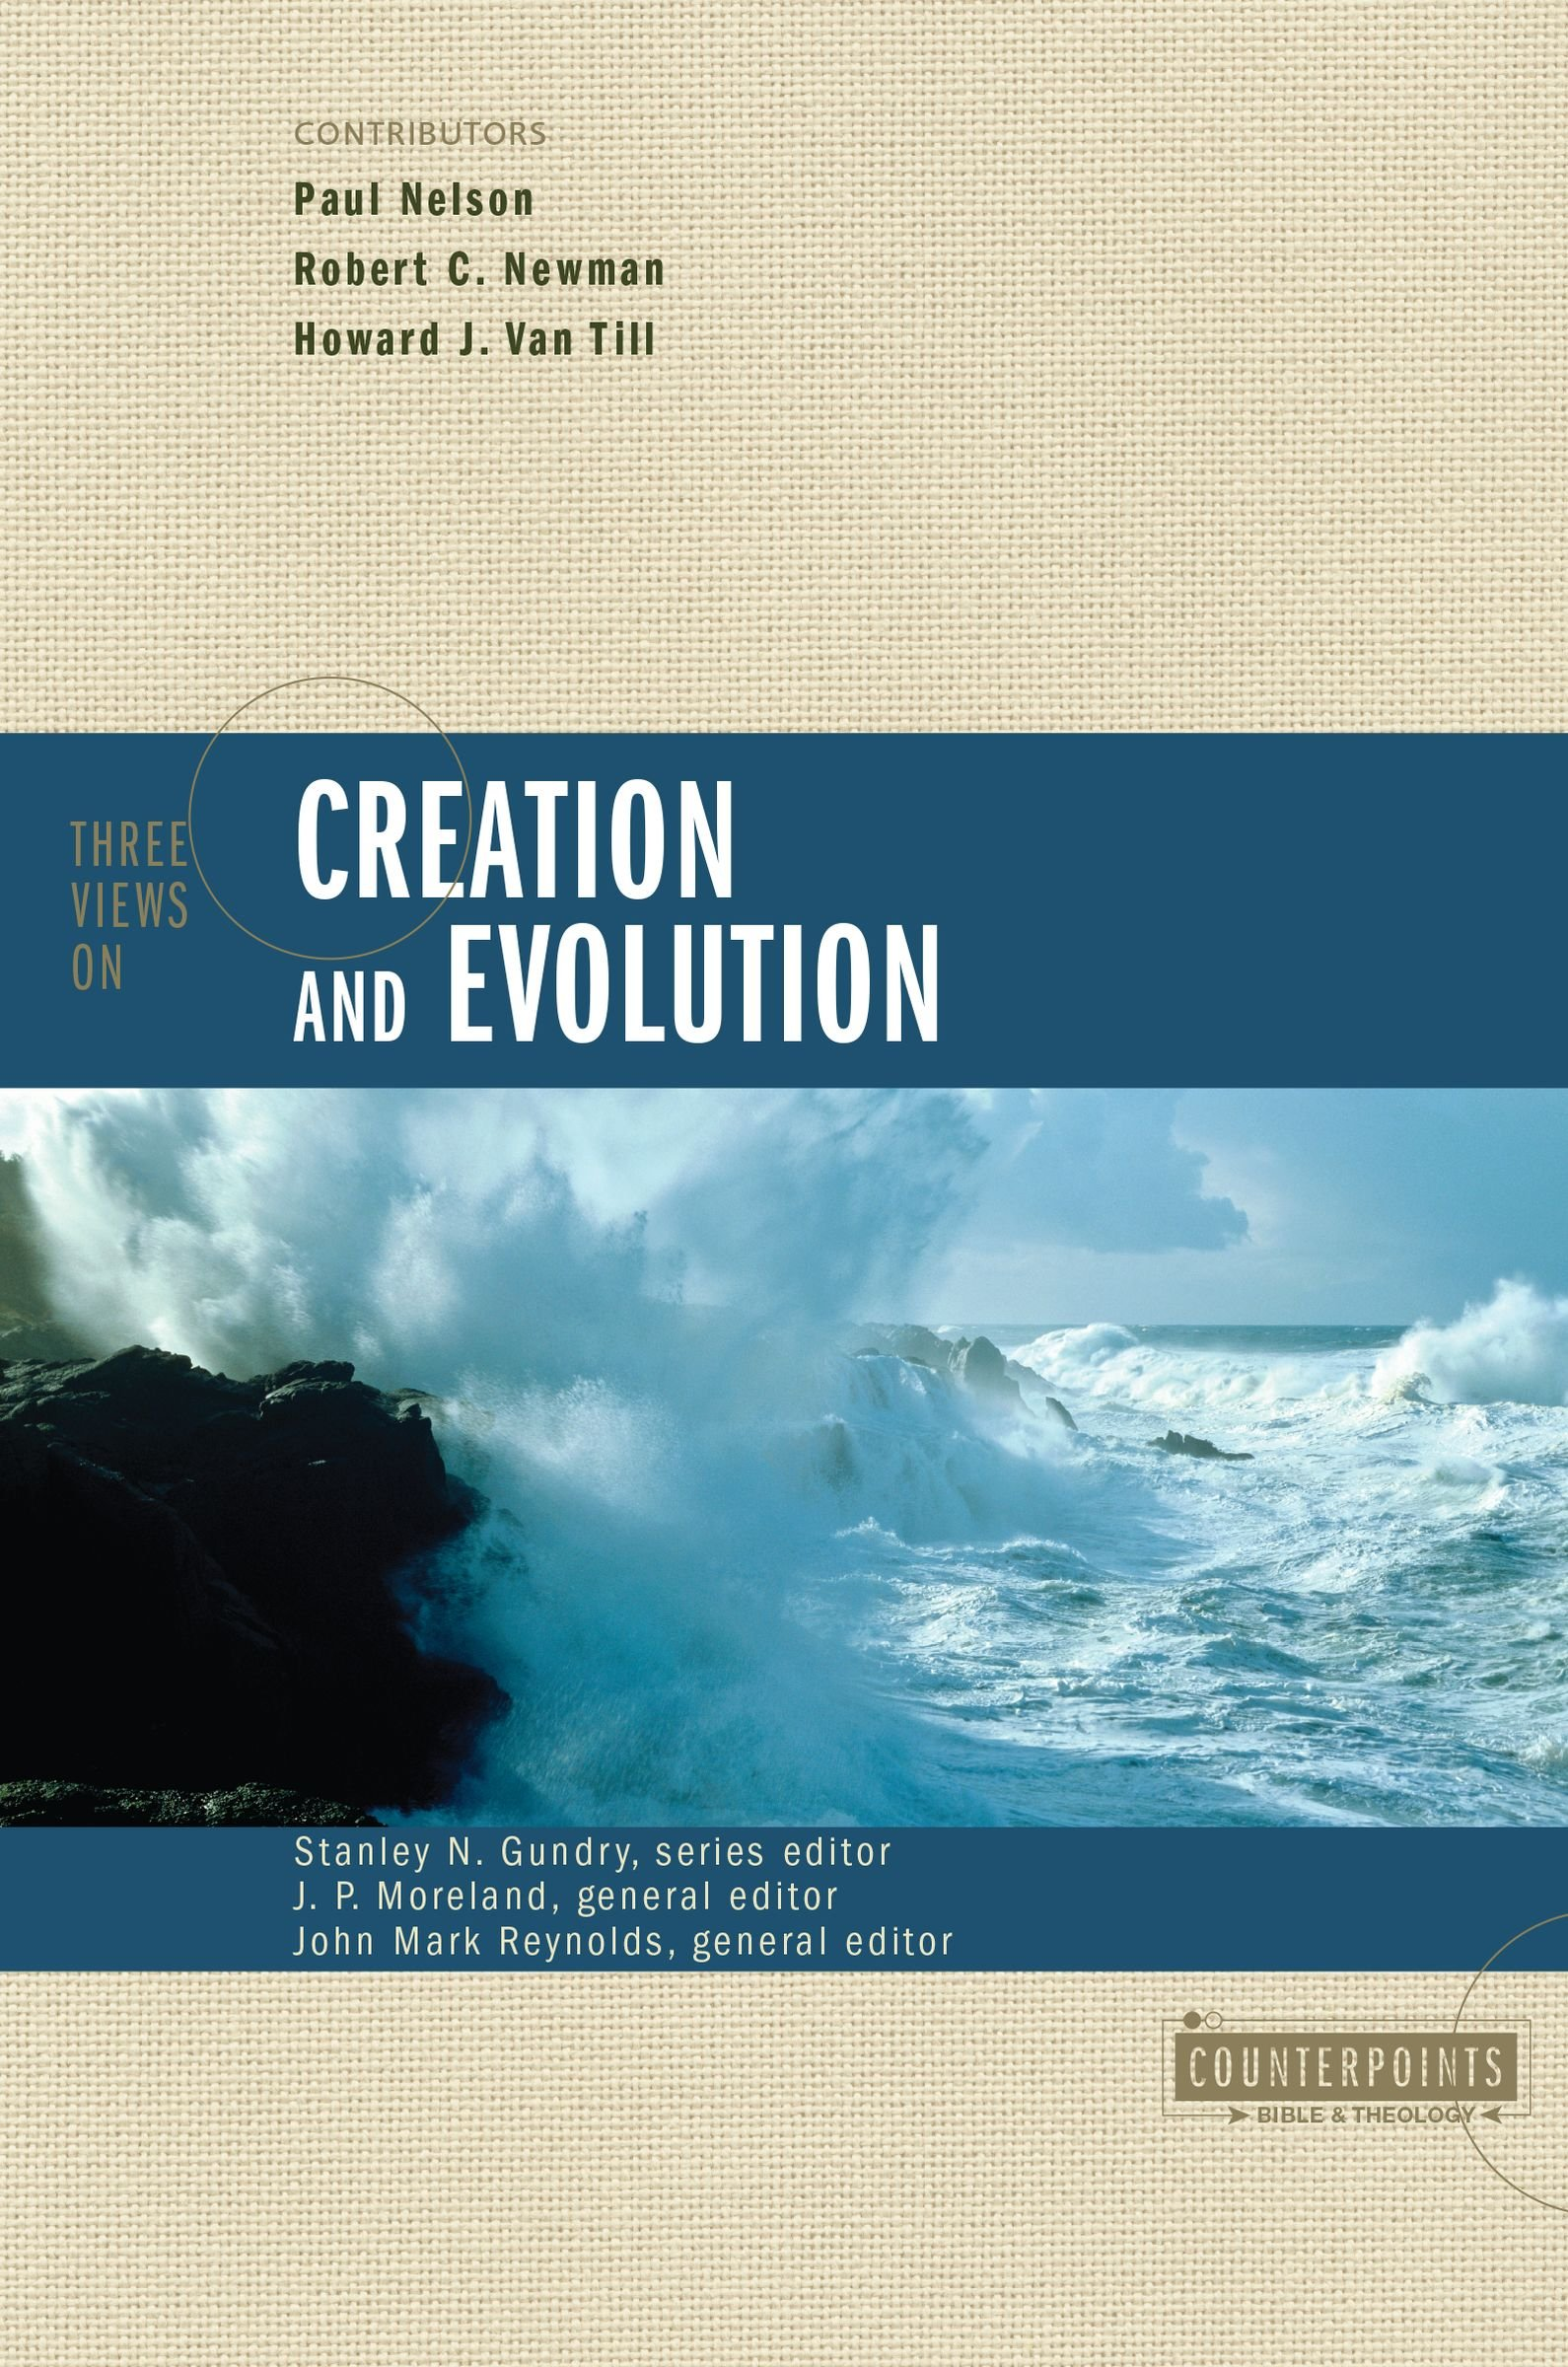 three views on creation and evolution counterpoints john mark three views on creation and evolution counterpoints john mark reynolds howard j van till paul nelson robert c newman james porter moreland